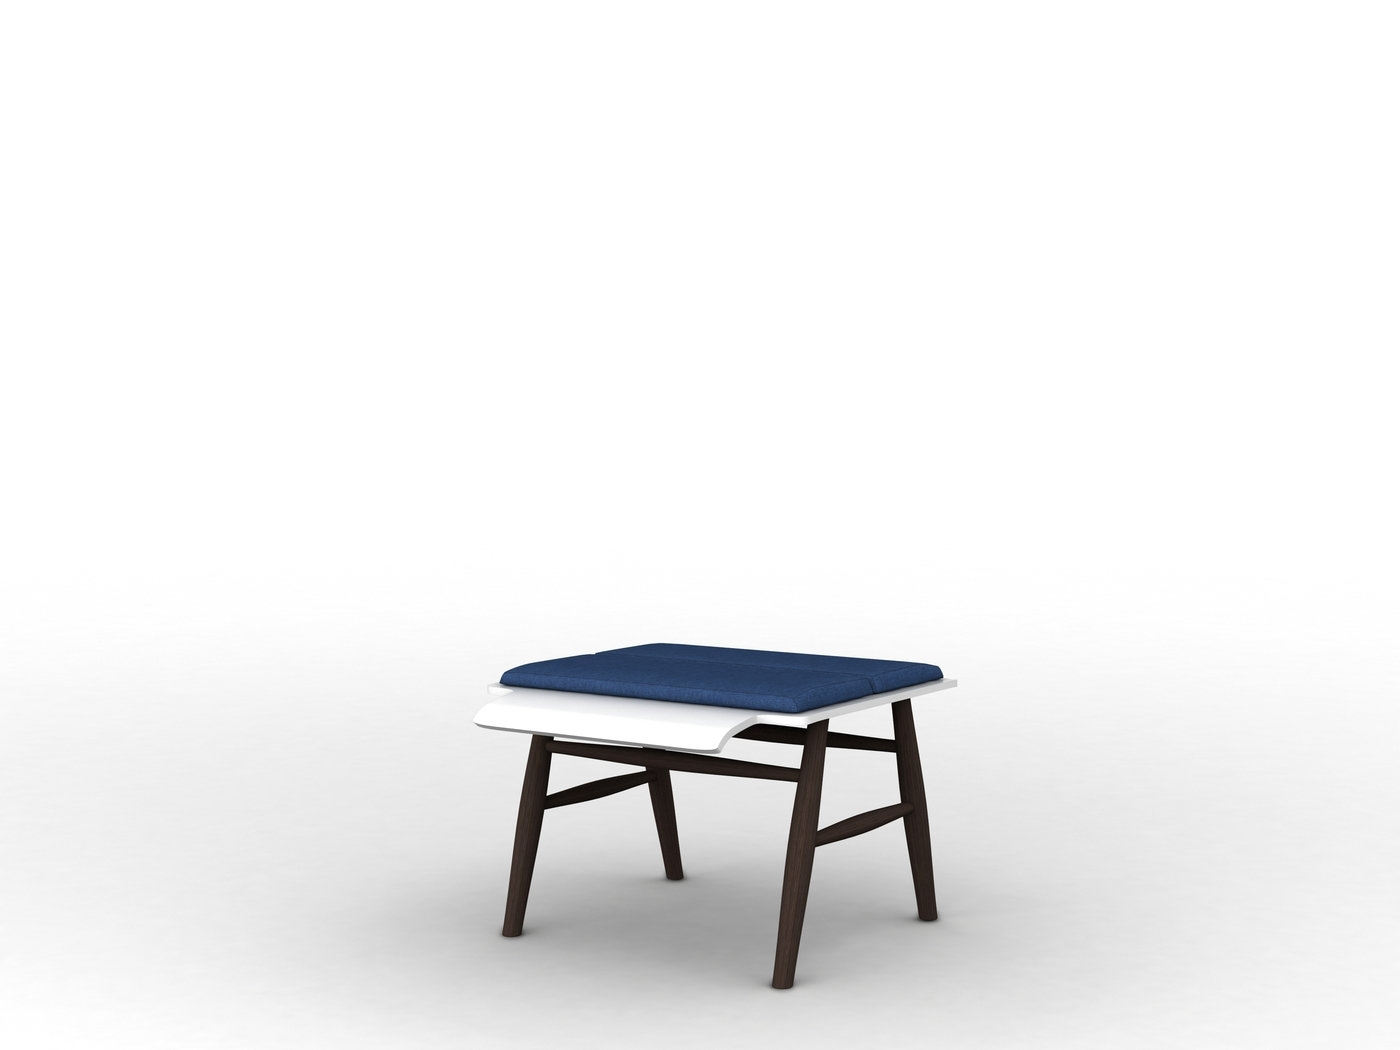 B Rollwai Ho Cheung At Coroflot Pertaining To Fashionable Broll Coffee Tables (View 20 of 20)